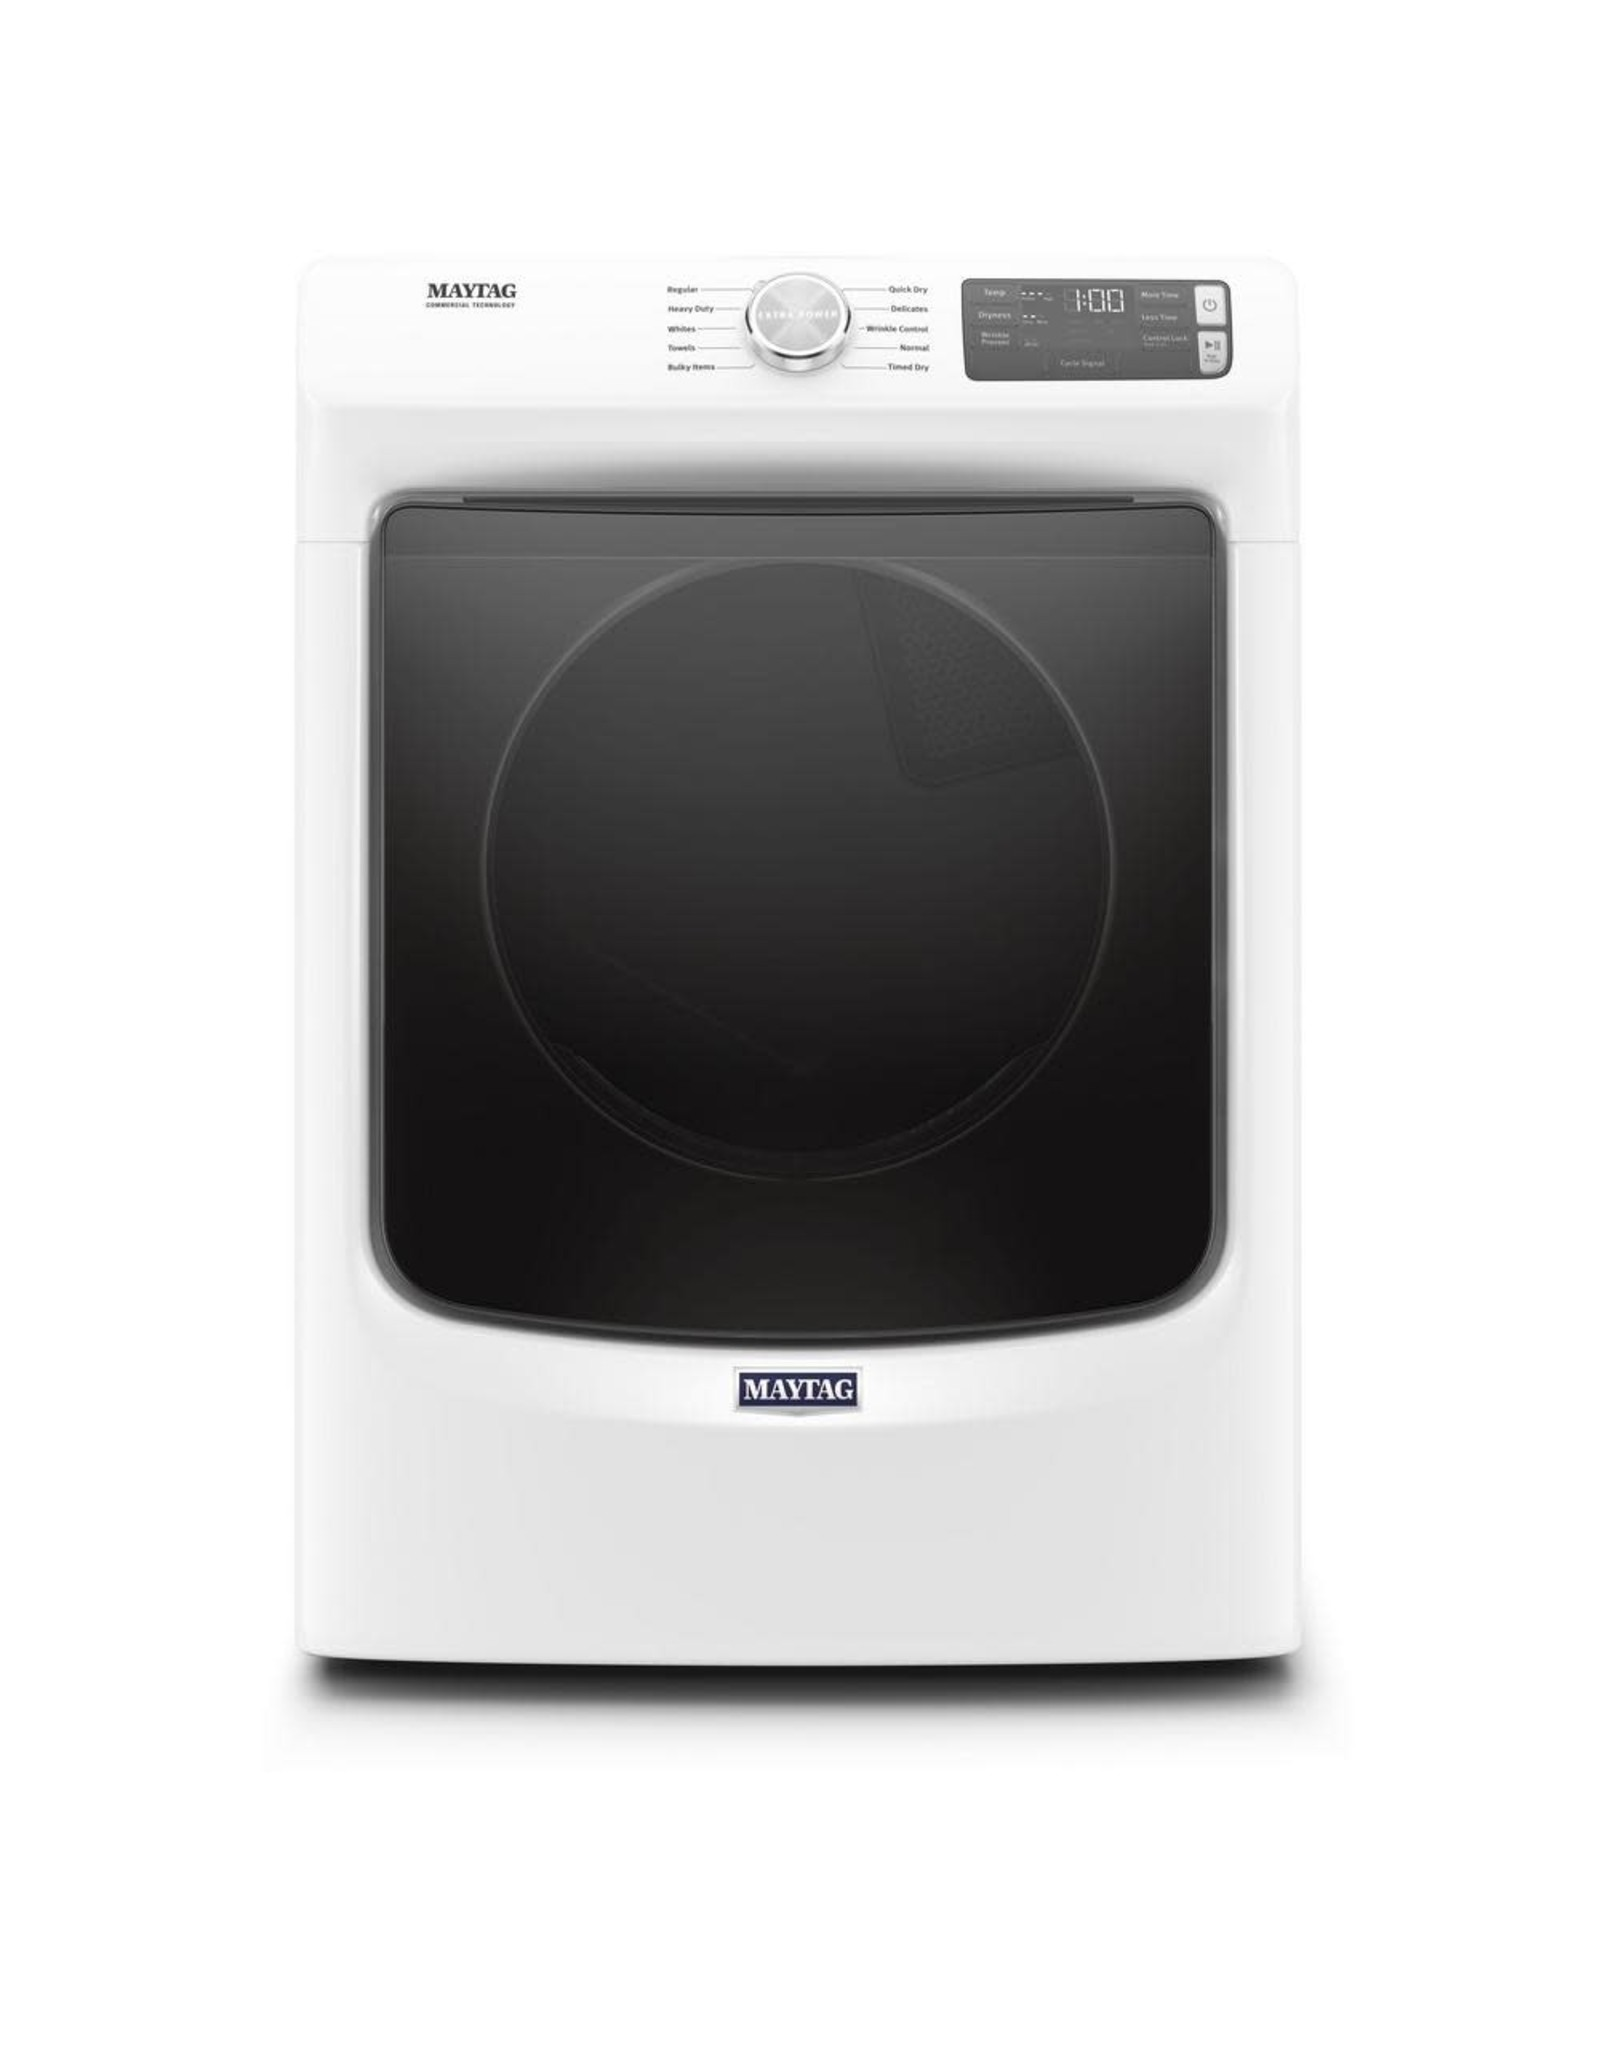 MAYTAG MED5630HW 7.3 cu. ft. 240-Volt White Stackable Electric Vented Dryer with Quick Dry Cycle, ENERGY STAR